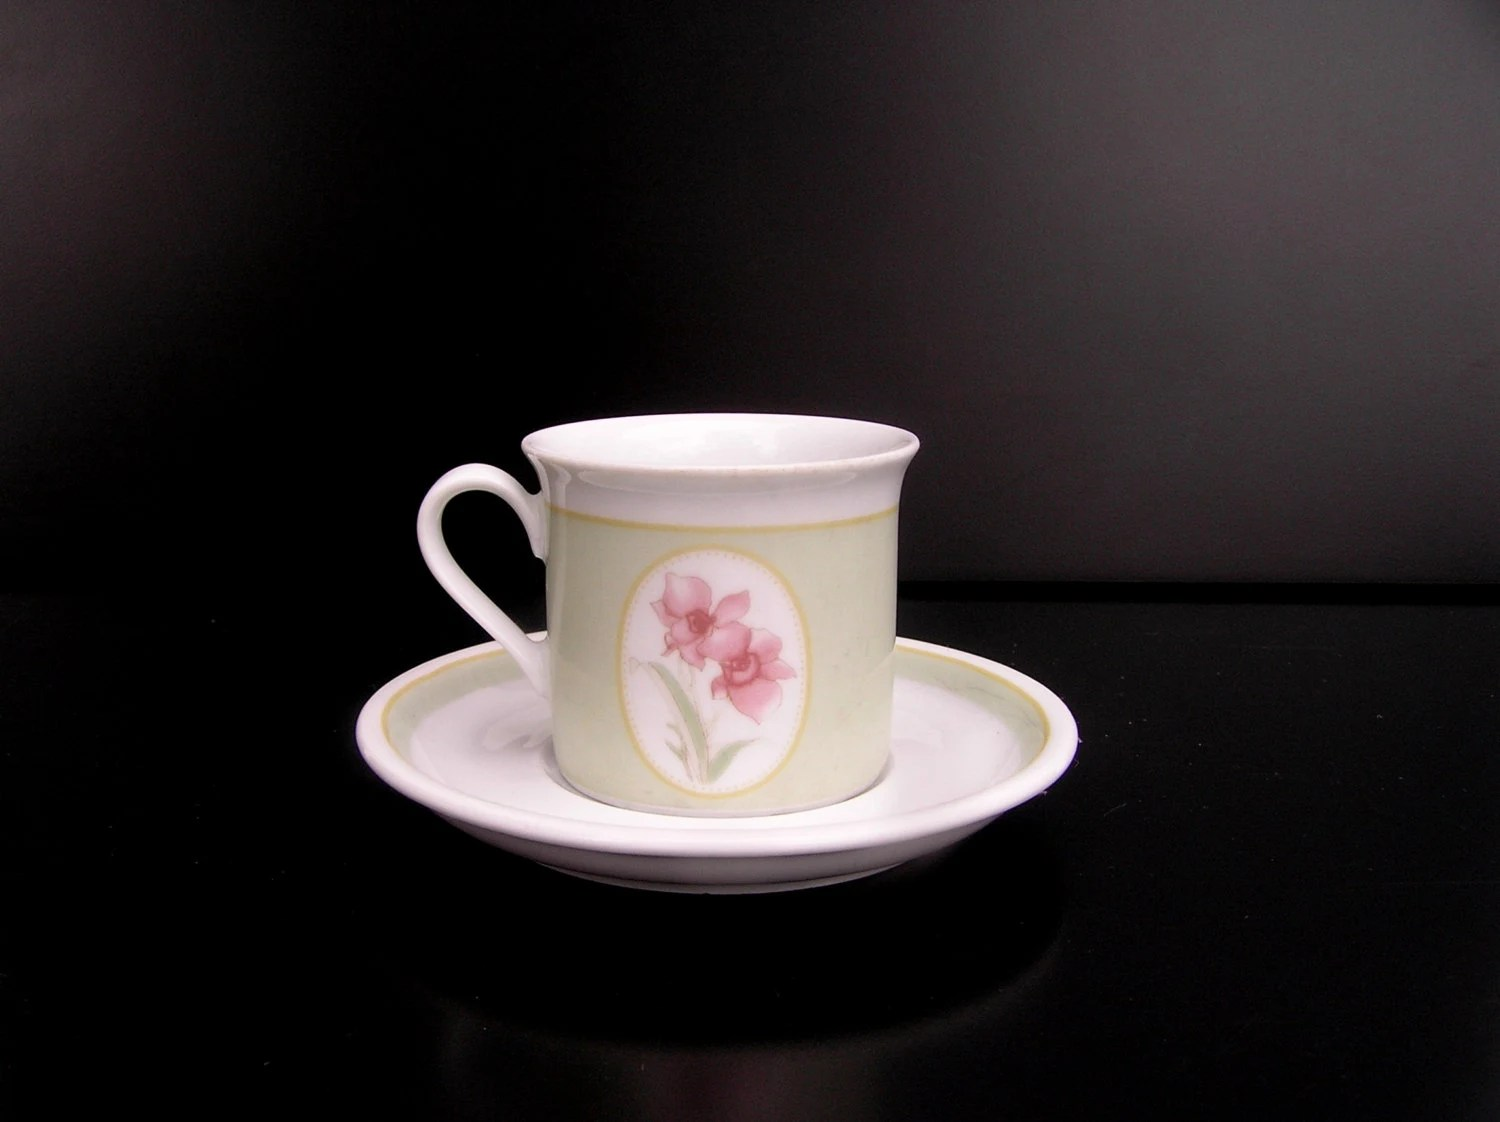 Small Coffee Cups And Saucers Vintage Bavaria Tea Cup Pastel Tea Cup Espresso Cup Mocca Cup Saucer Vintage Teacup Small Coffee Cup Bavaria German Tea Cup Floral Tea Cup